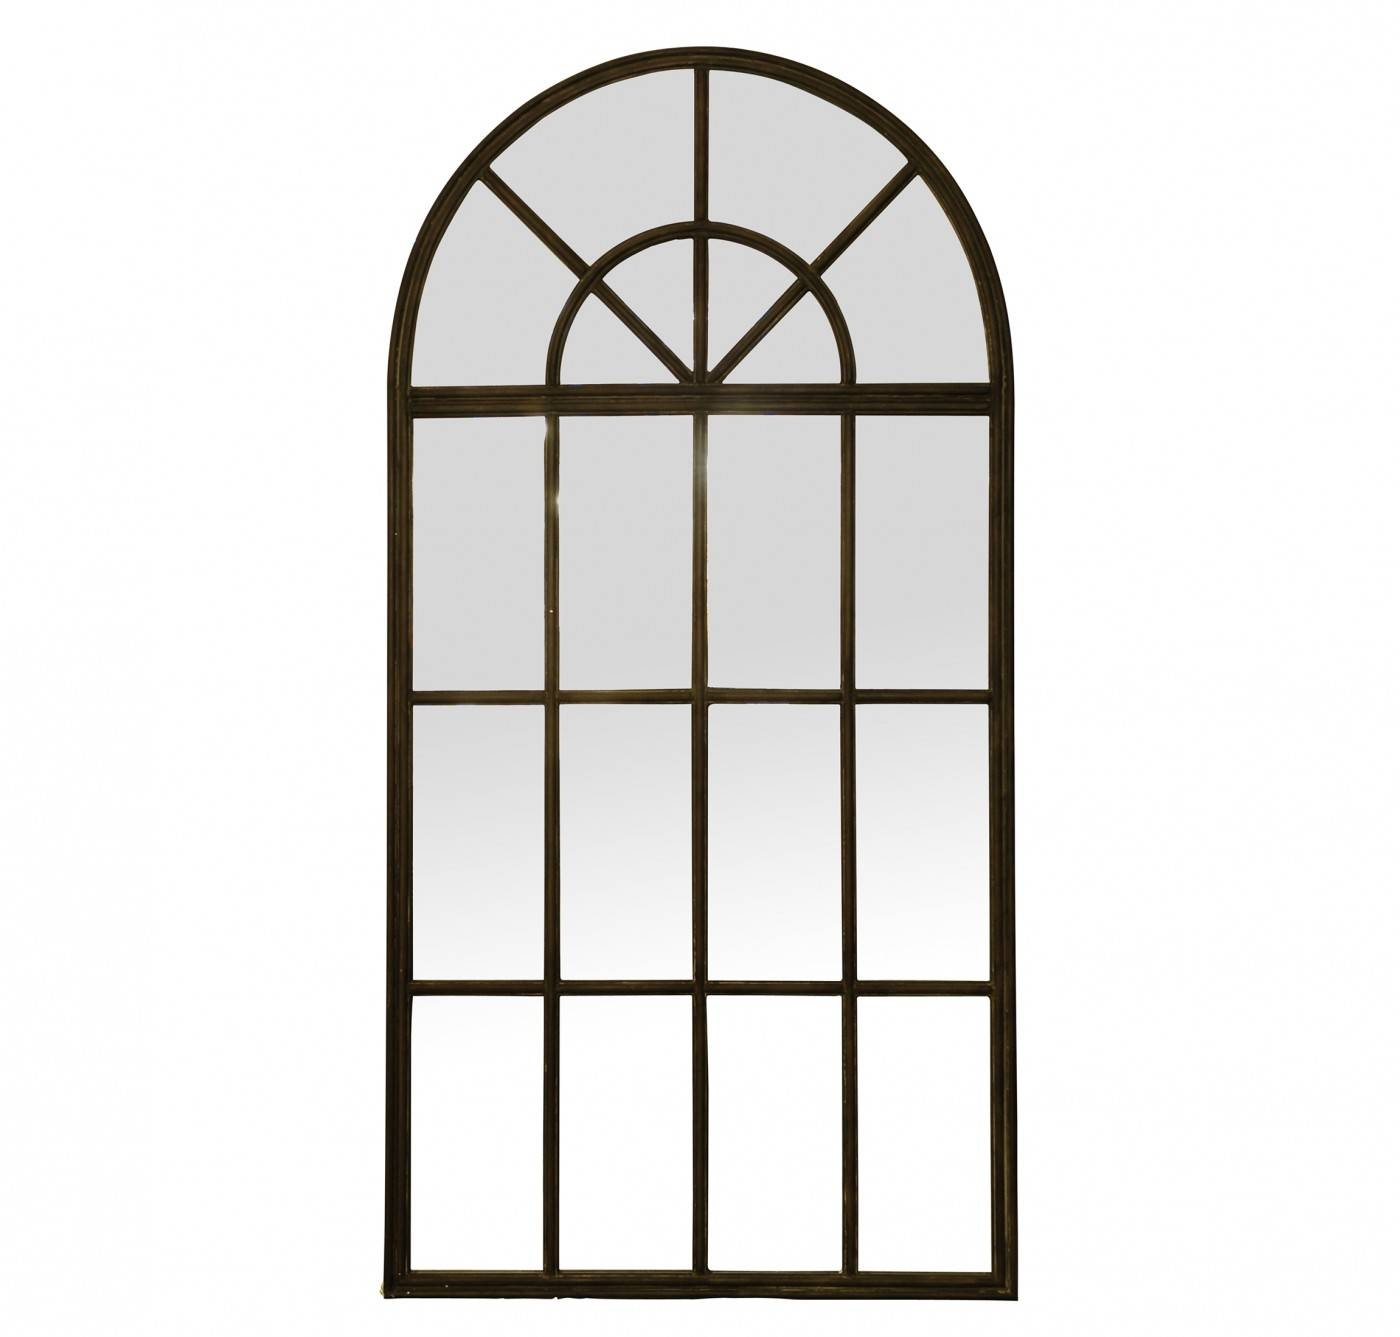 Arched Mirrors That Look Like Windows | Vanity Decoration throughout Large Arched Window Mirrors (Image 2 of 15)